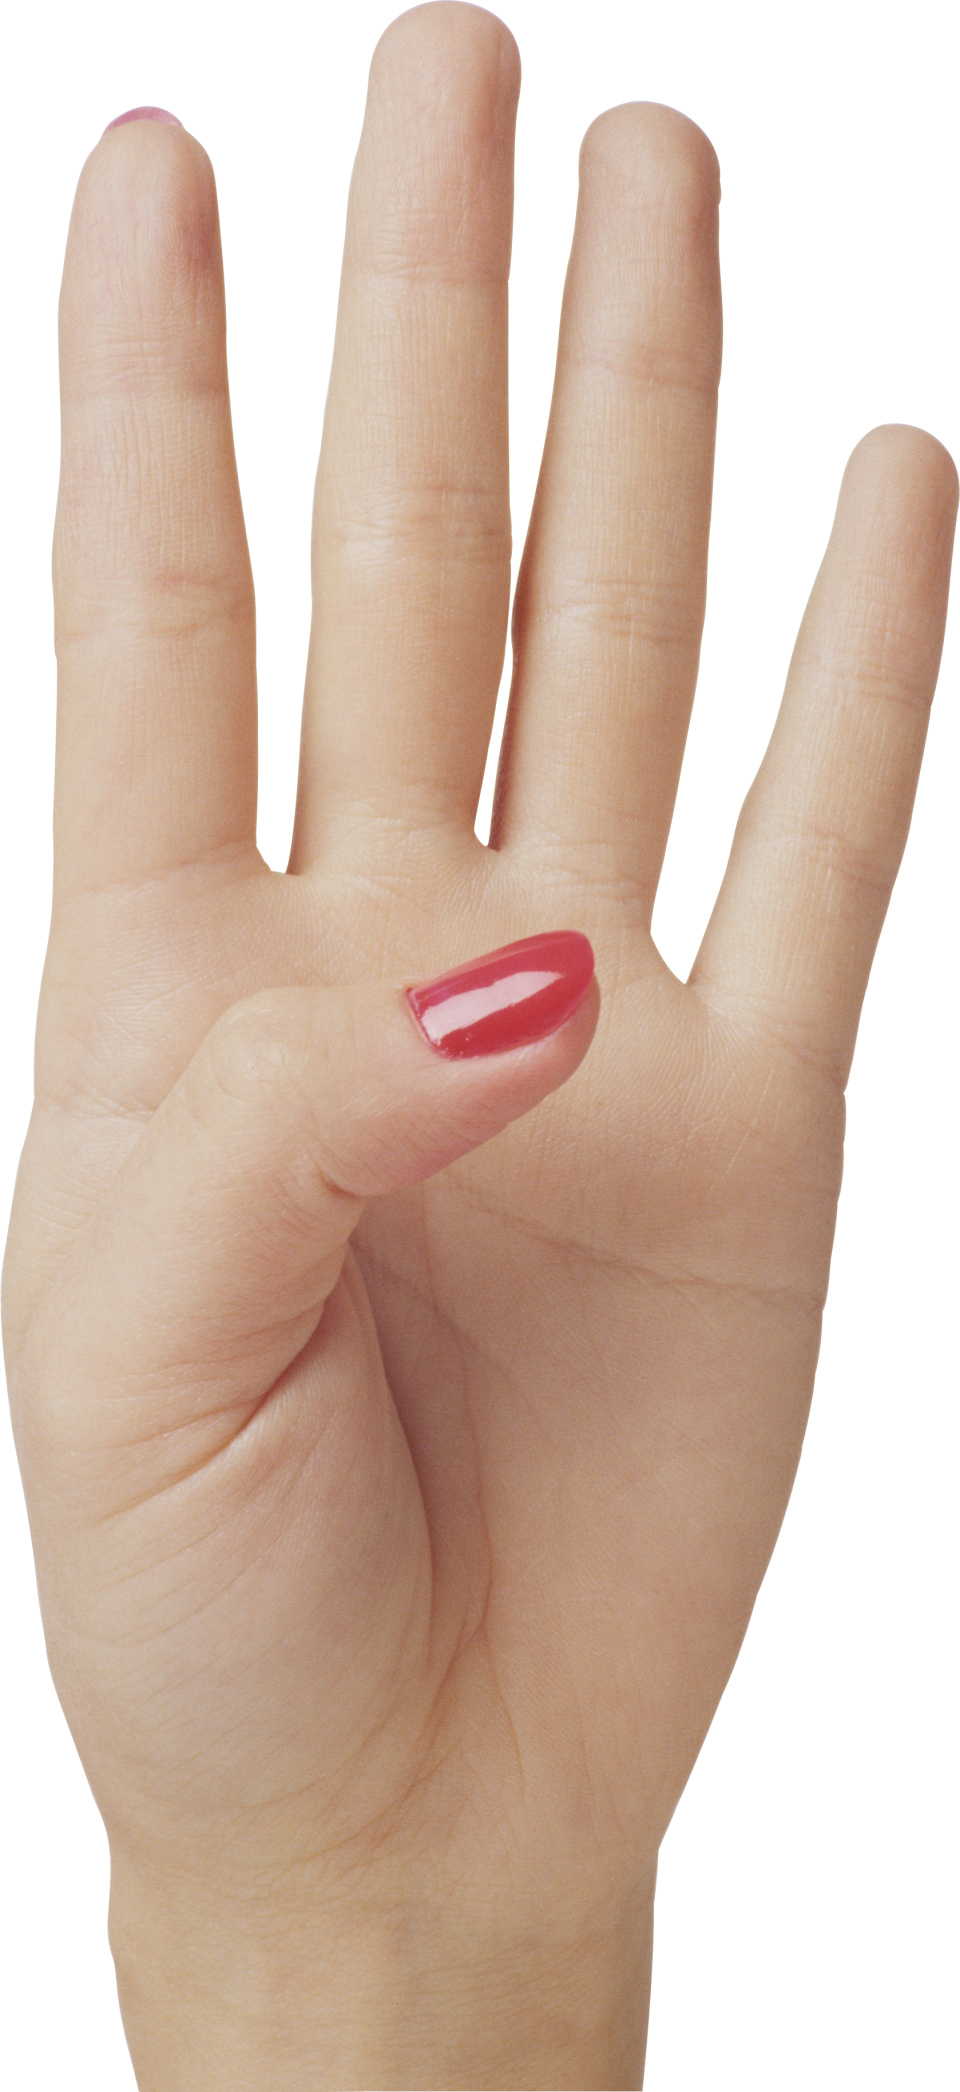 Four Finger Hand PNG Image